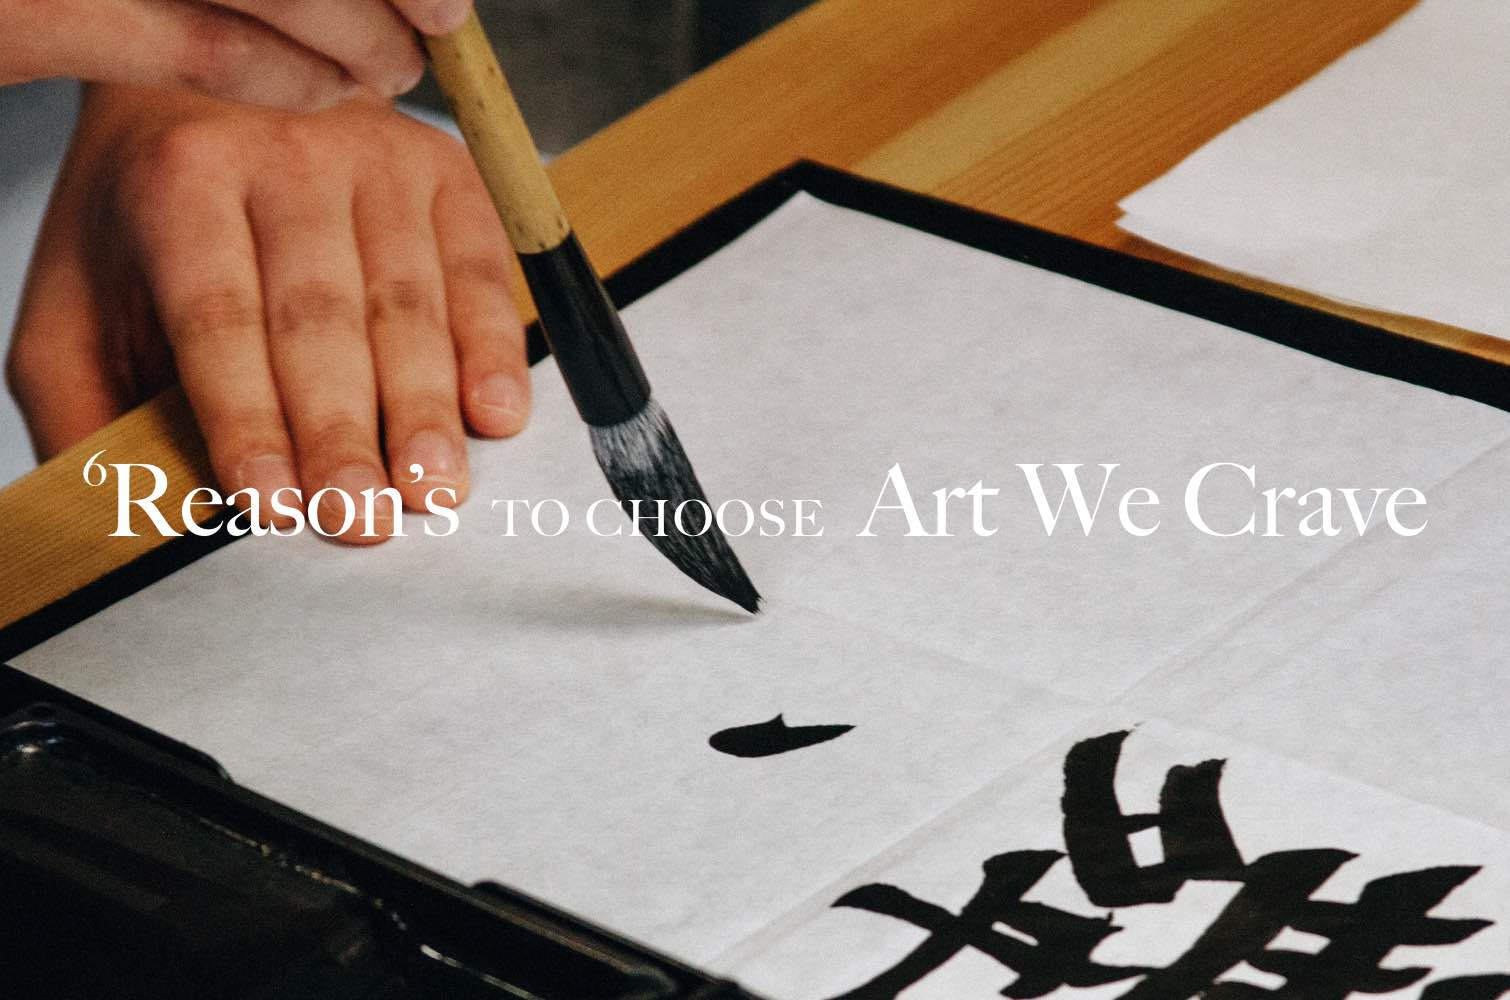 6 reason why to choose Art We Crave 3